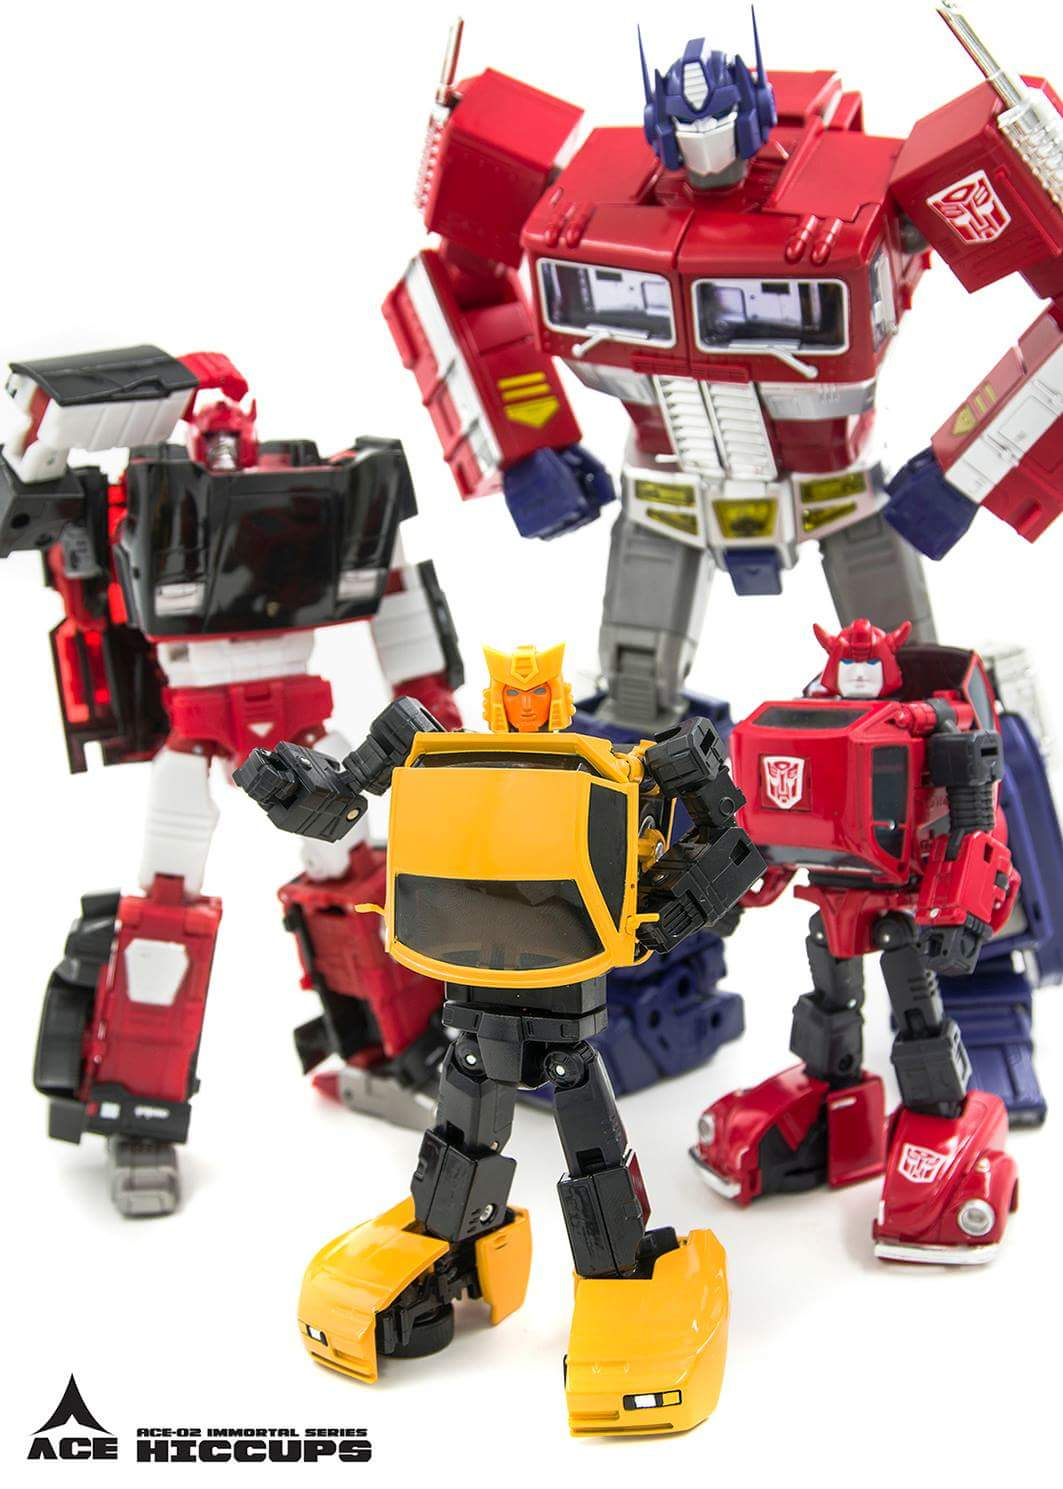 [ACE Collectables] Produit Tiers - Minibots MP - ACE-01 Tumbler (aka Cliffjumper/Matamore), ACE-02 Hiccups (aka Hubcap/Virevolto), ACE-03 Trident (aka Seaspray/Embruns) GUnHNh0I